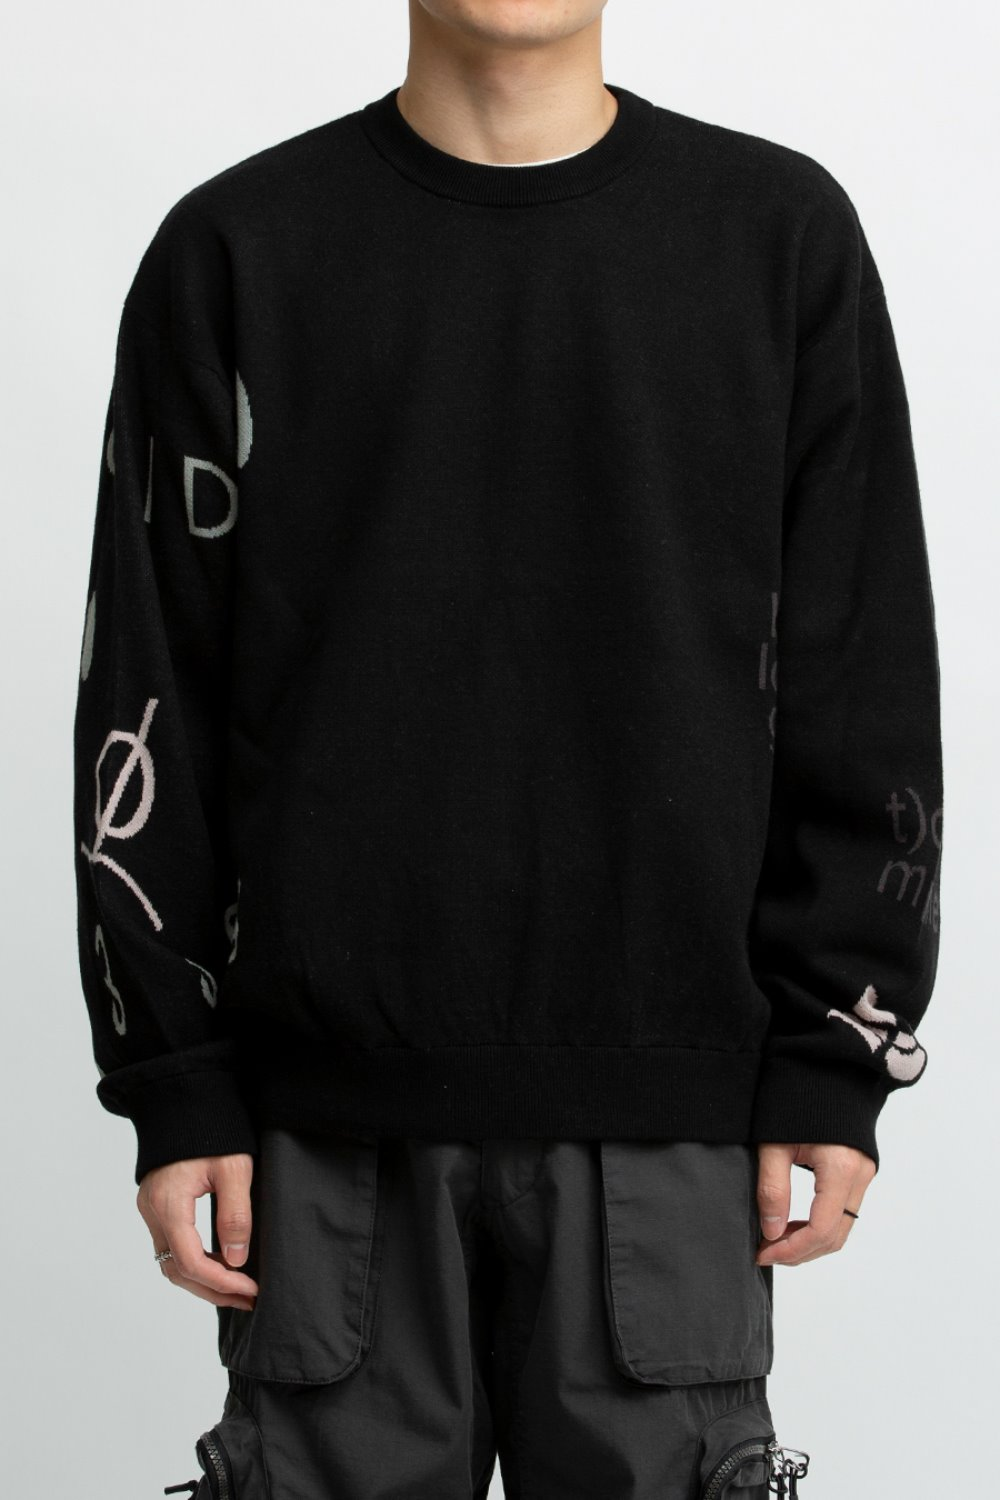 JACQUARD COTTON CREWNECK SWEATER BLACK